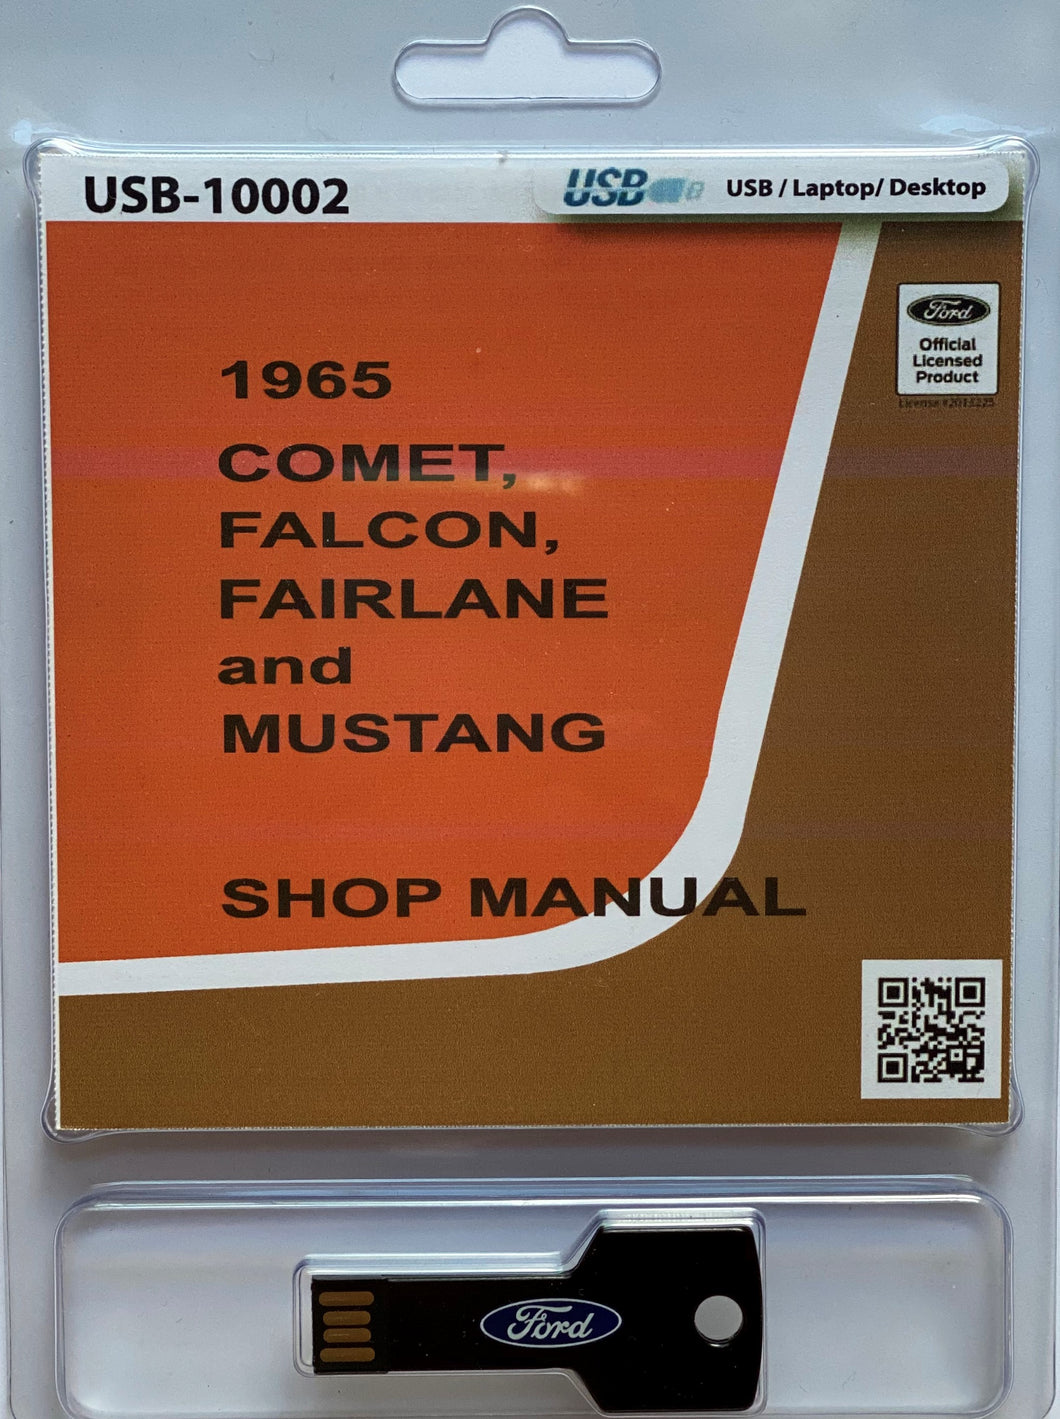 1965 Comet Falcon Fairlane and Mustang Shop Manual On USB Drive